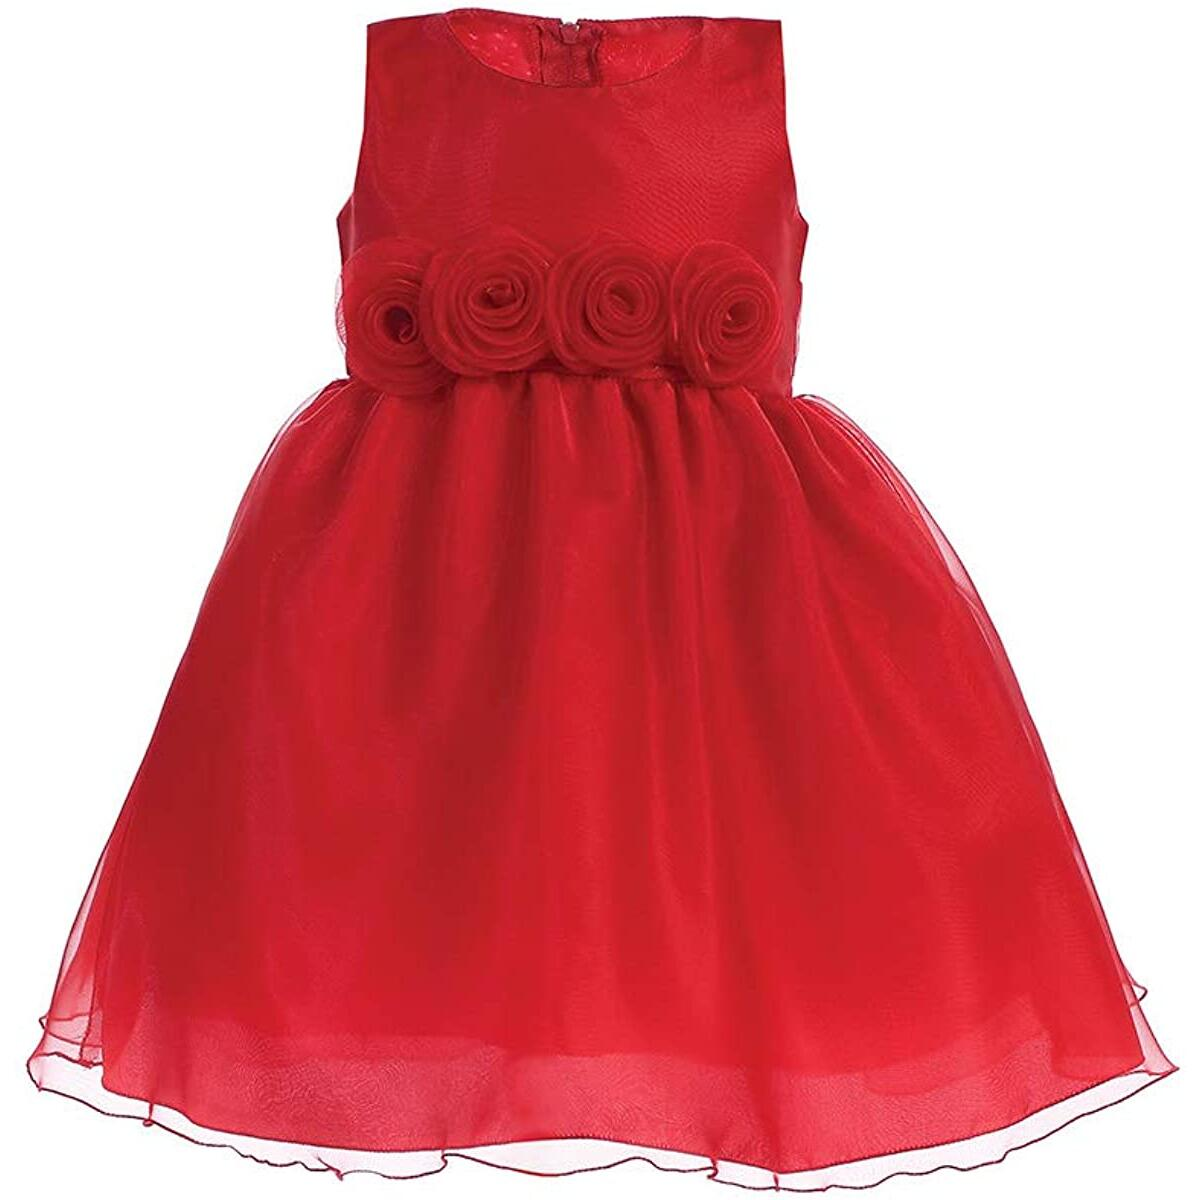 Pink Princess Christmas Dresses for Girls - Gold, Silver, Purple, Red Baby Toddler Outfits - Made in USA